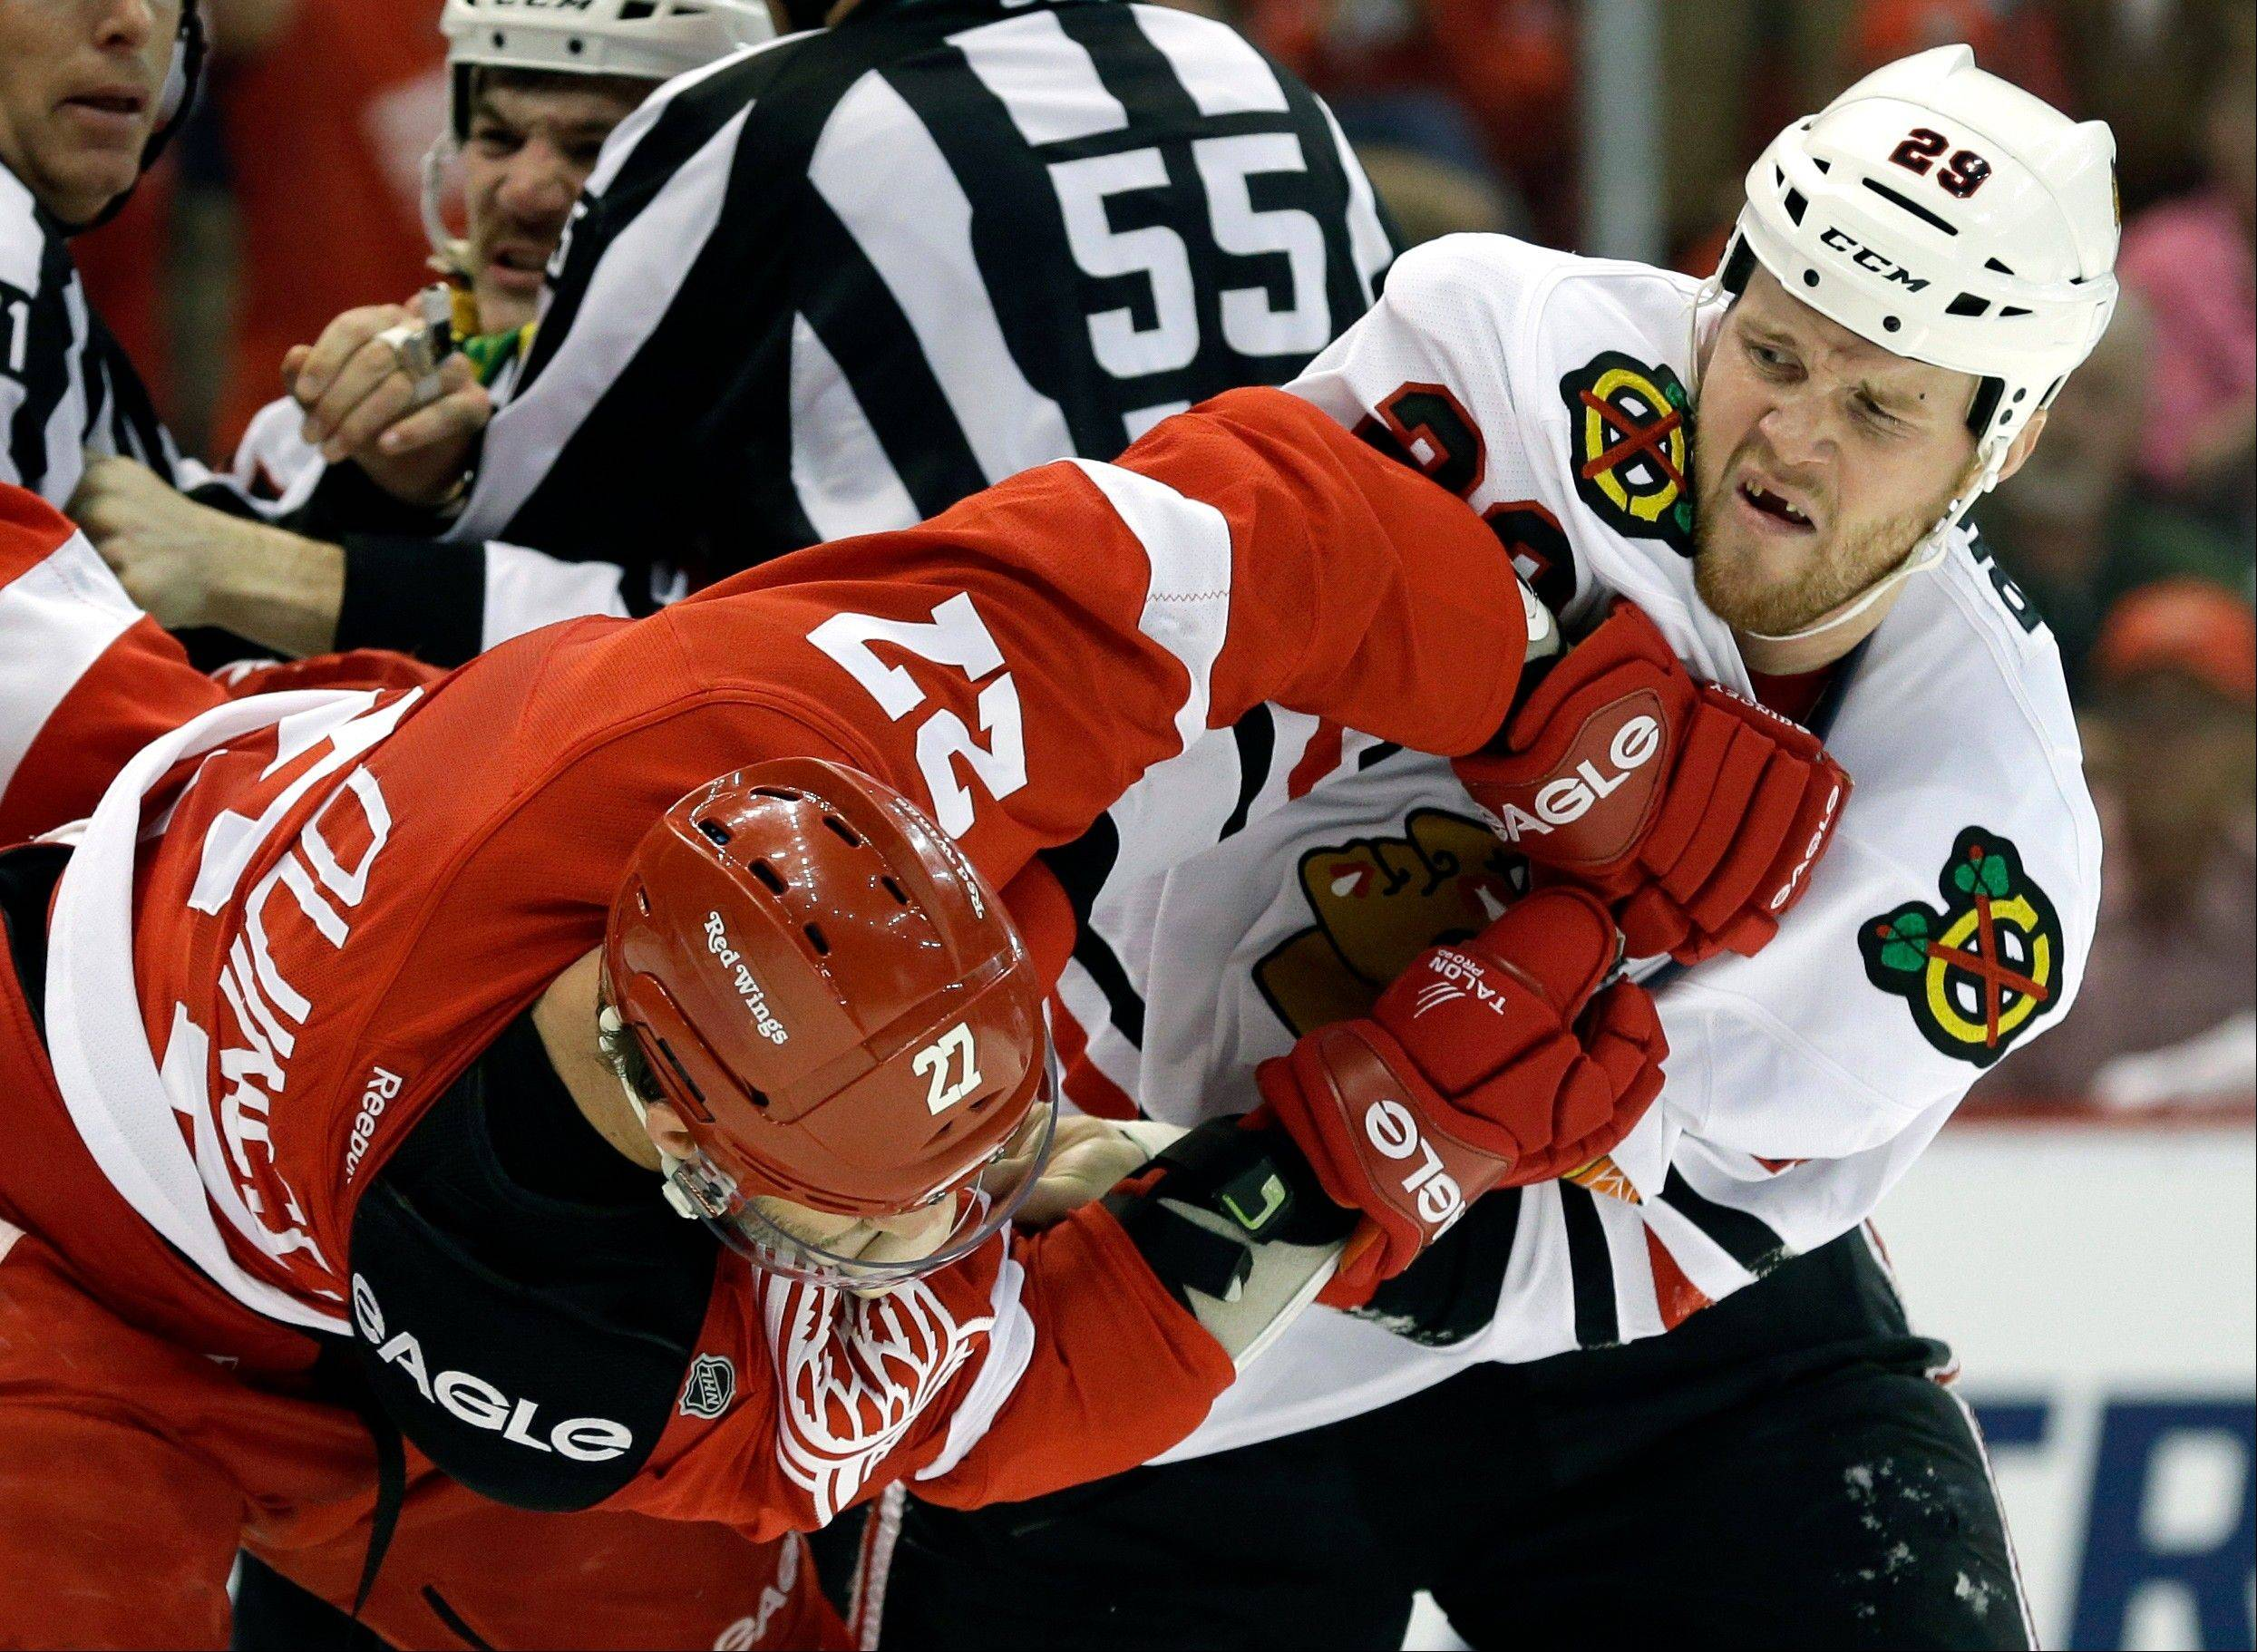 Some of the fiesty play in Game 3 could spill into Game 4 when the Red Wings host the Blackhawks in Detroit. Kyle Quincey (27) and Blackhawks left wing Bryan Bickell (29) had some words in the first period of Detroit's Game 3 win.